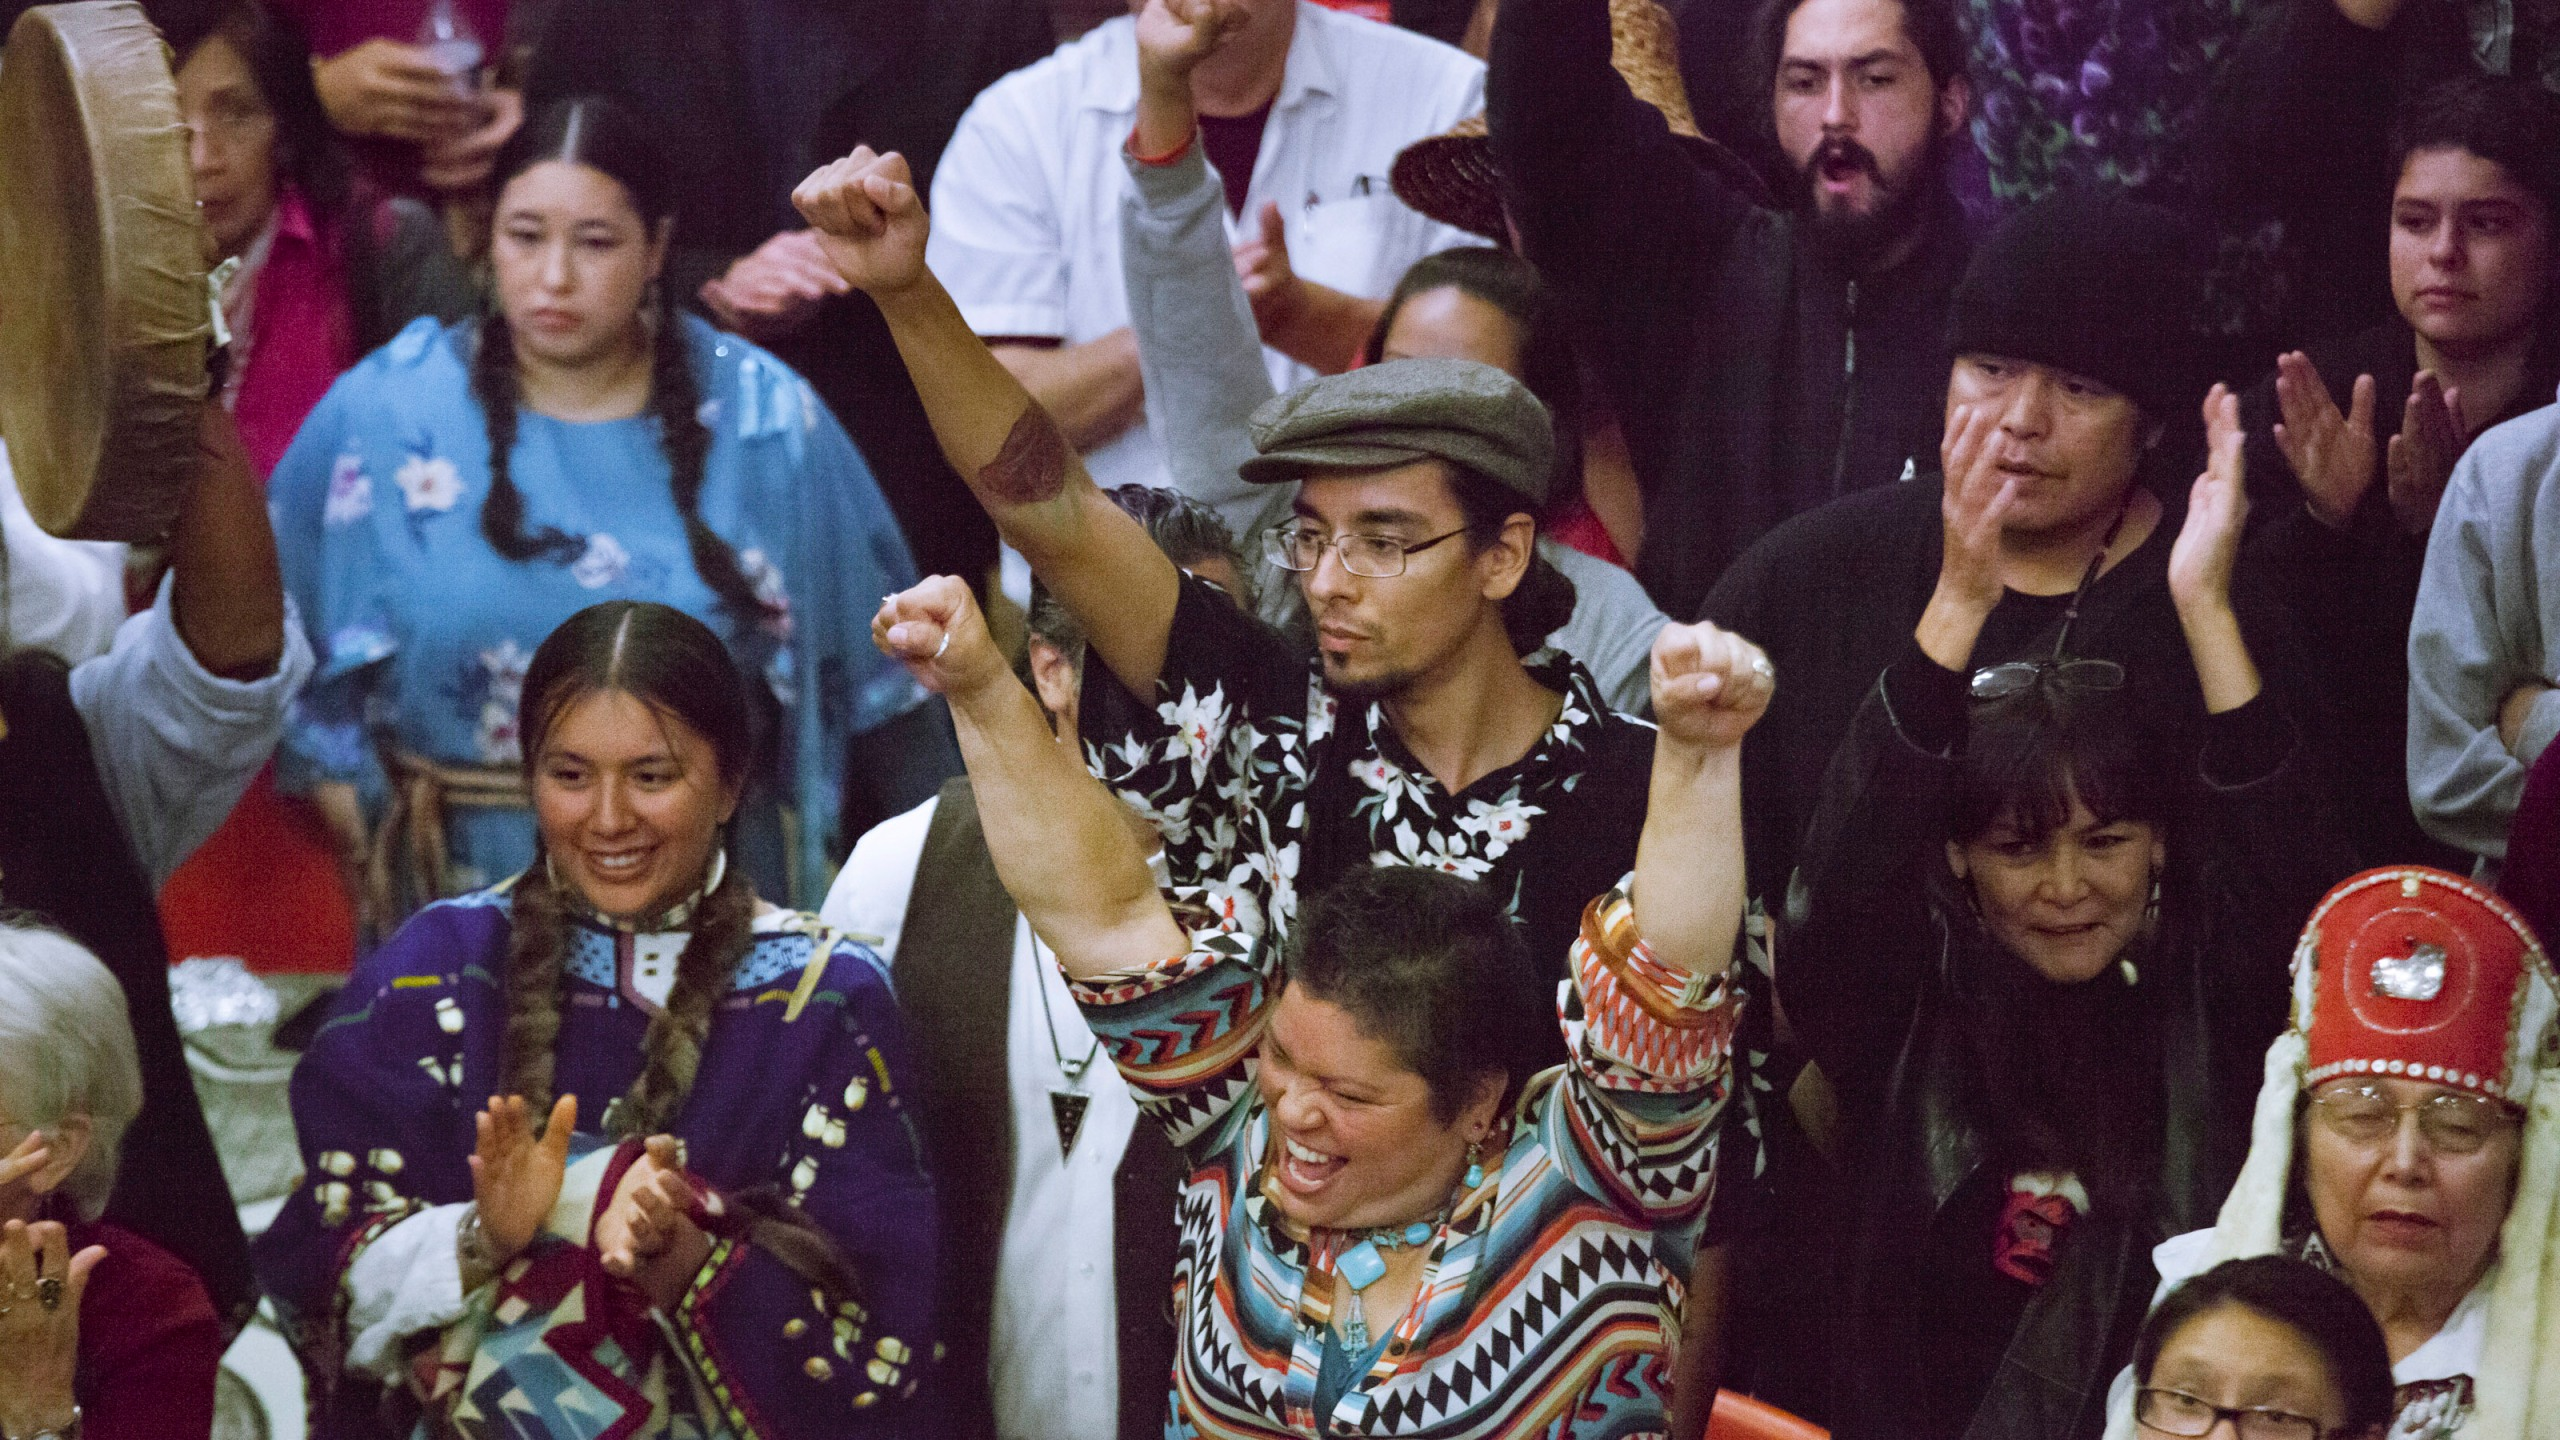 Seattle City Council Votes To Change Columbus Day To Indigenous Peoples' Day_558846